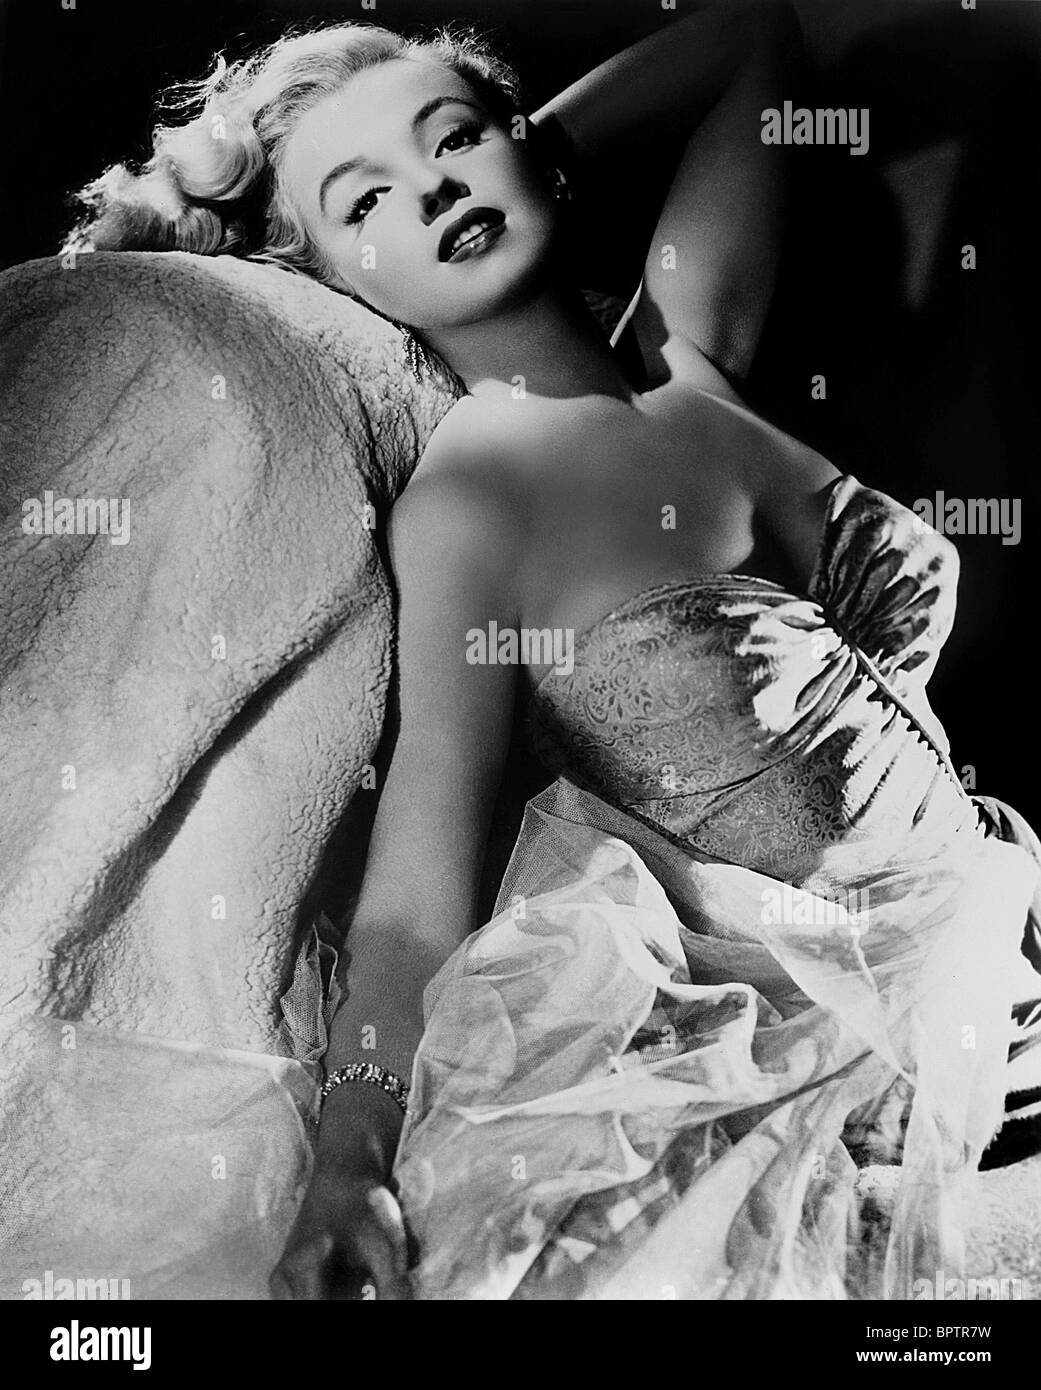 MARILYN MONROE ACTRESS (1953) - Stock Image